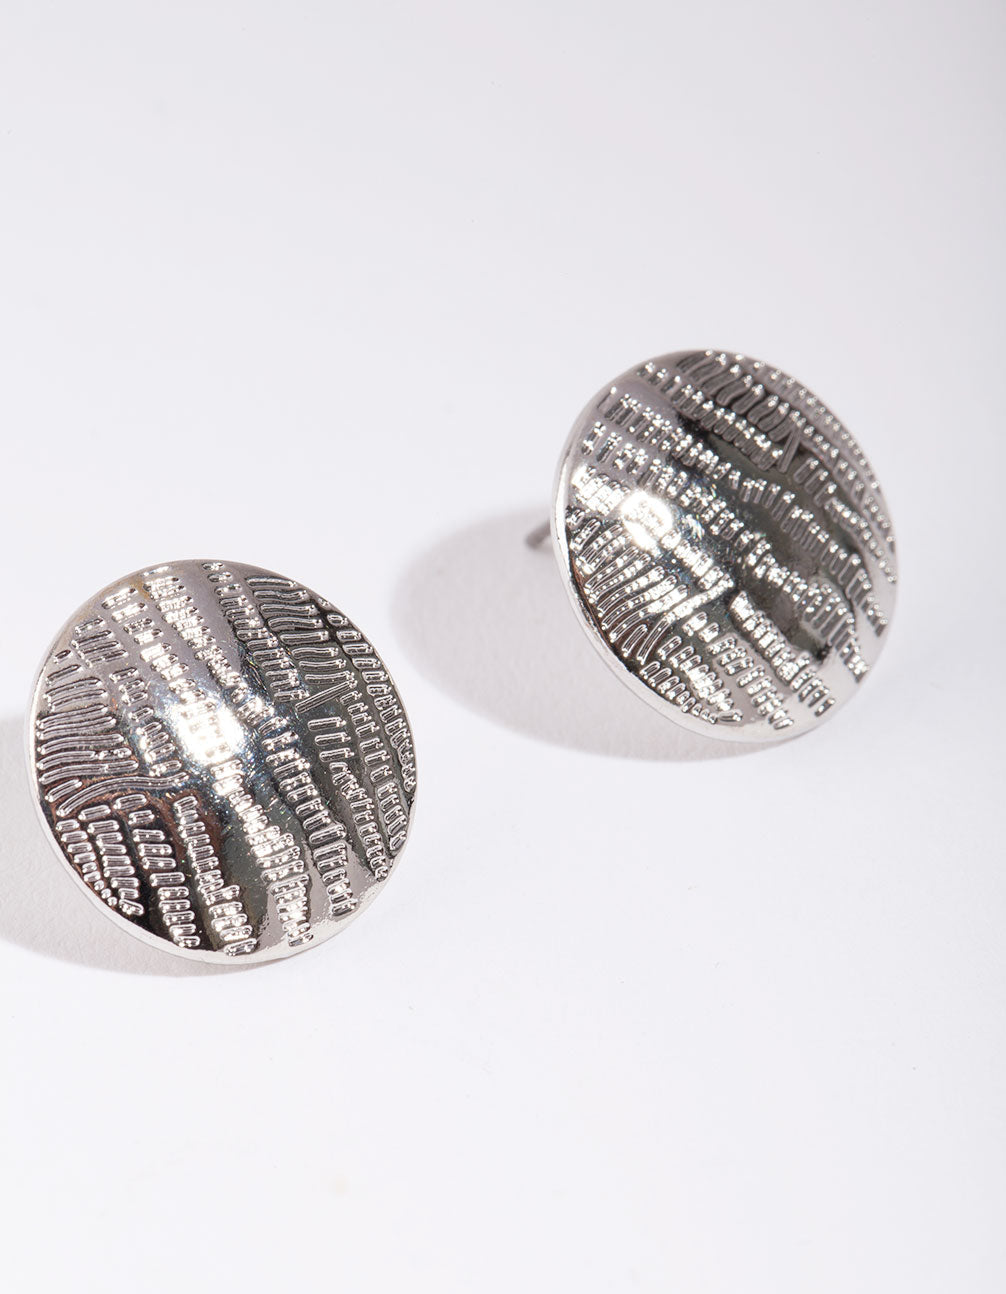 Rhodium Textured Lined Button Earrings